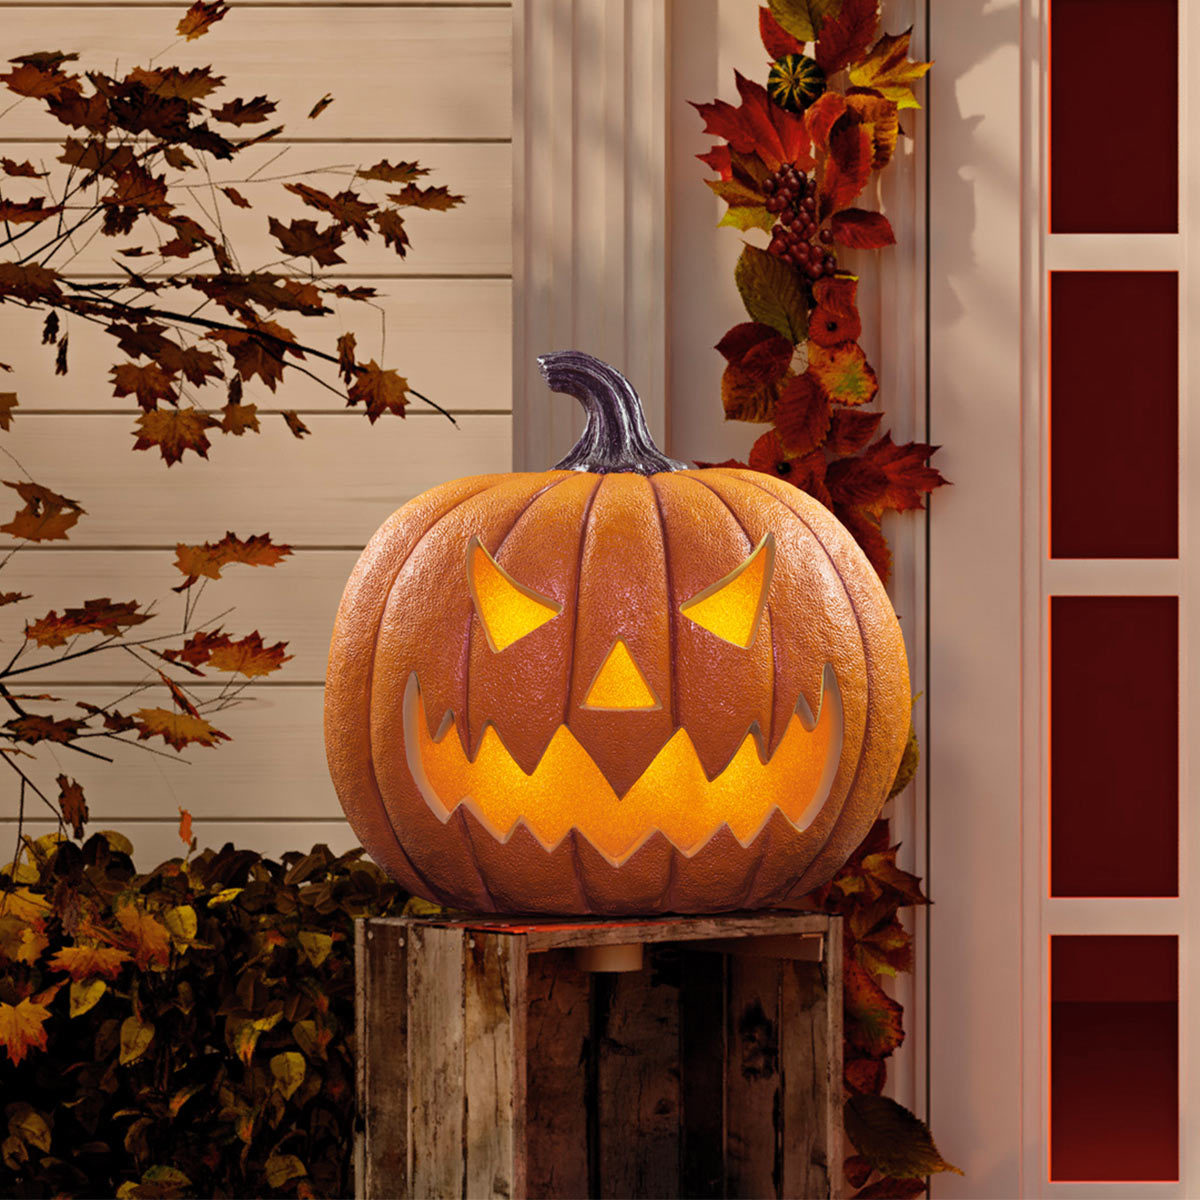 Halloween 20 50 8cm Squatty Jack O Lantern Pumpkin With Led Flickering Lights And Sounds Costco Uk